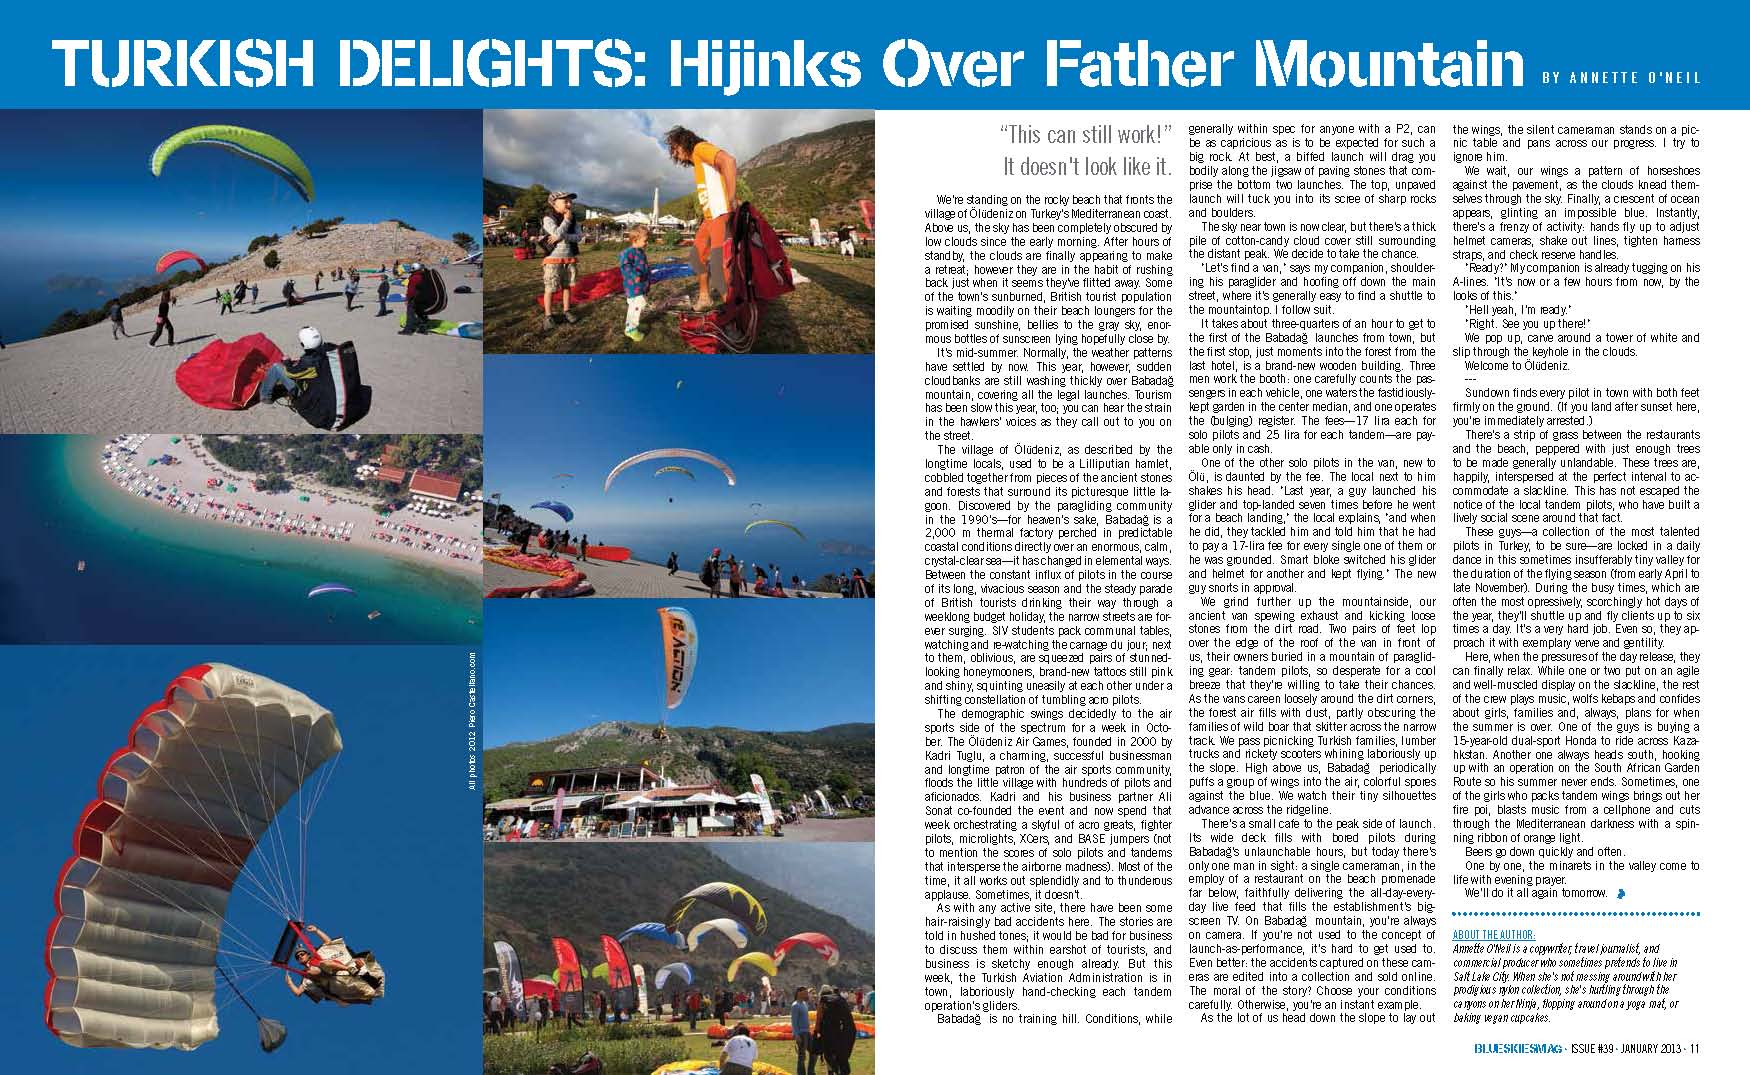 Turkish Delights: Hijinks Over Father Mountain